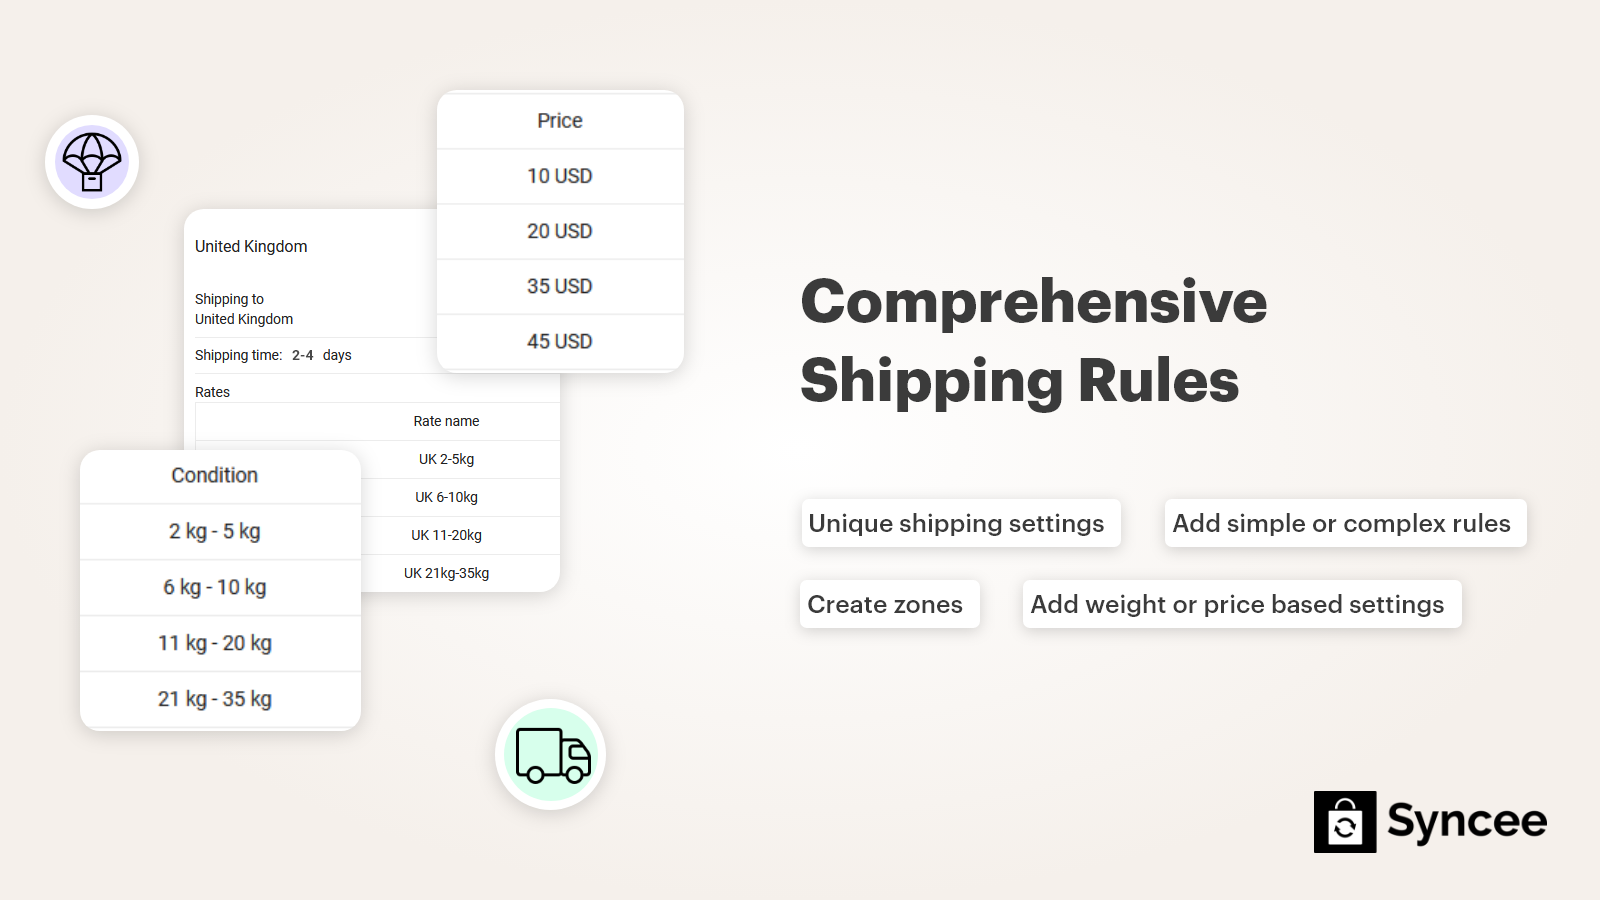 Comprehensive shipping rules